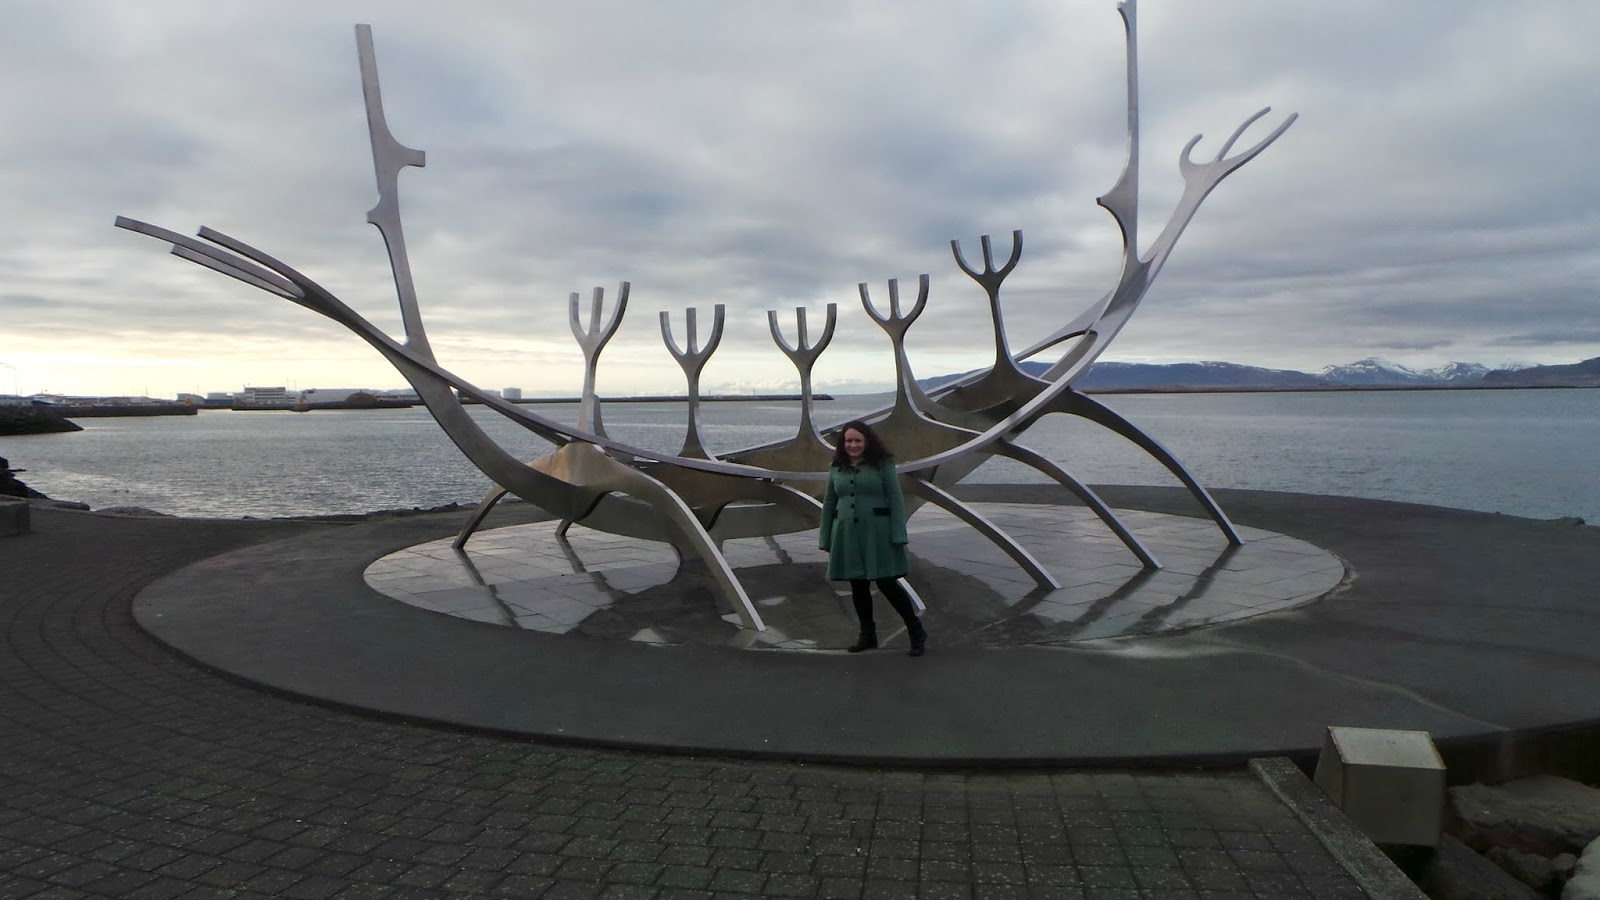 The Sun Voyager iceland